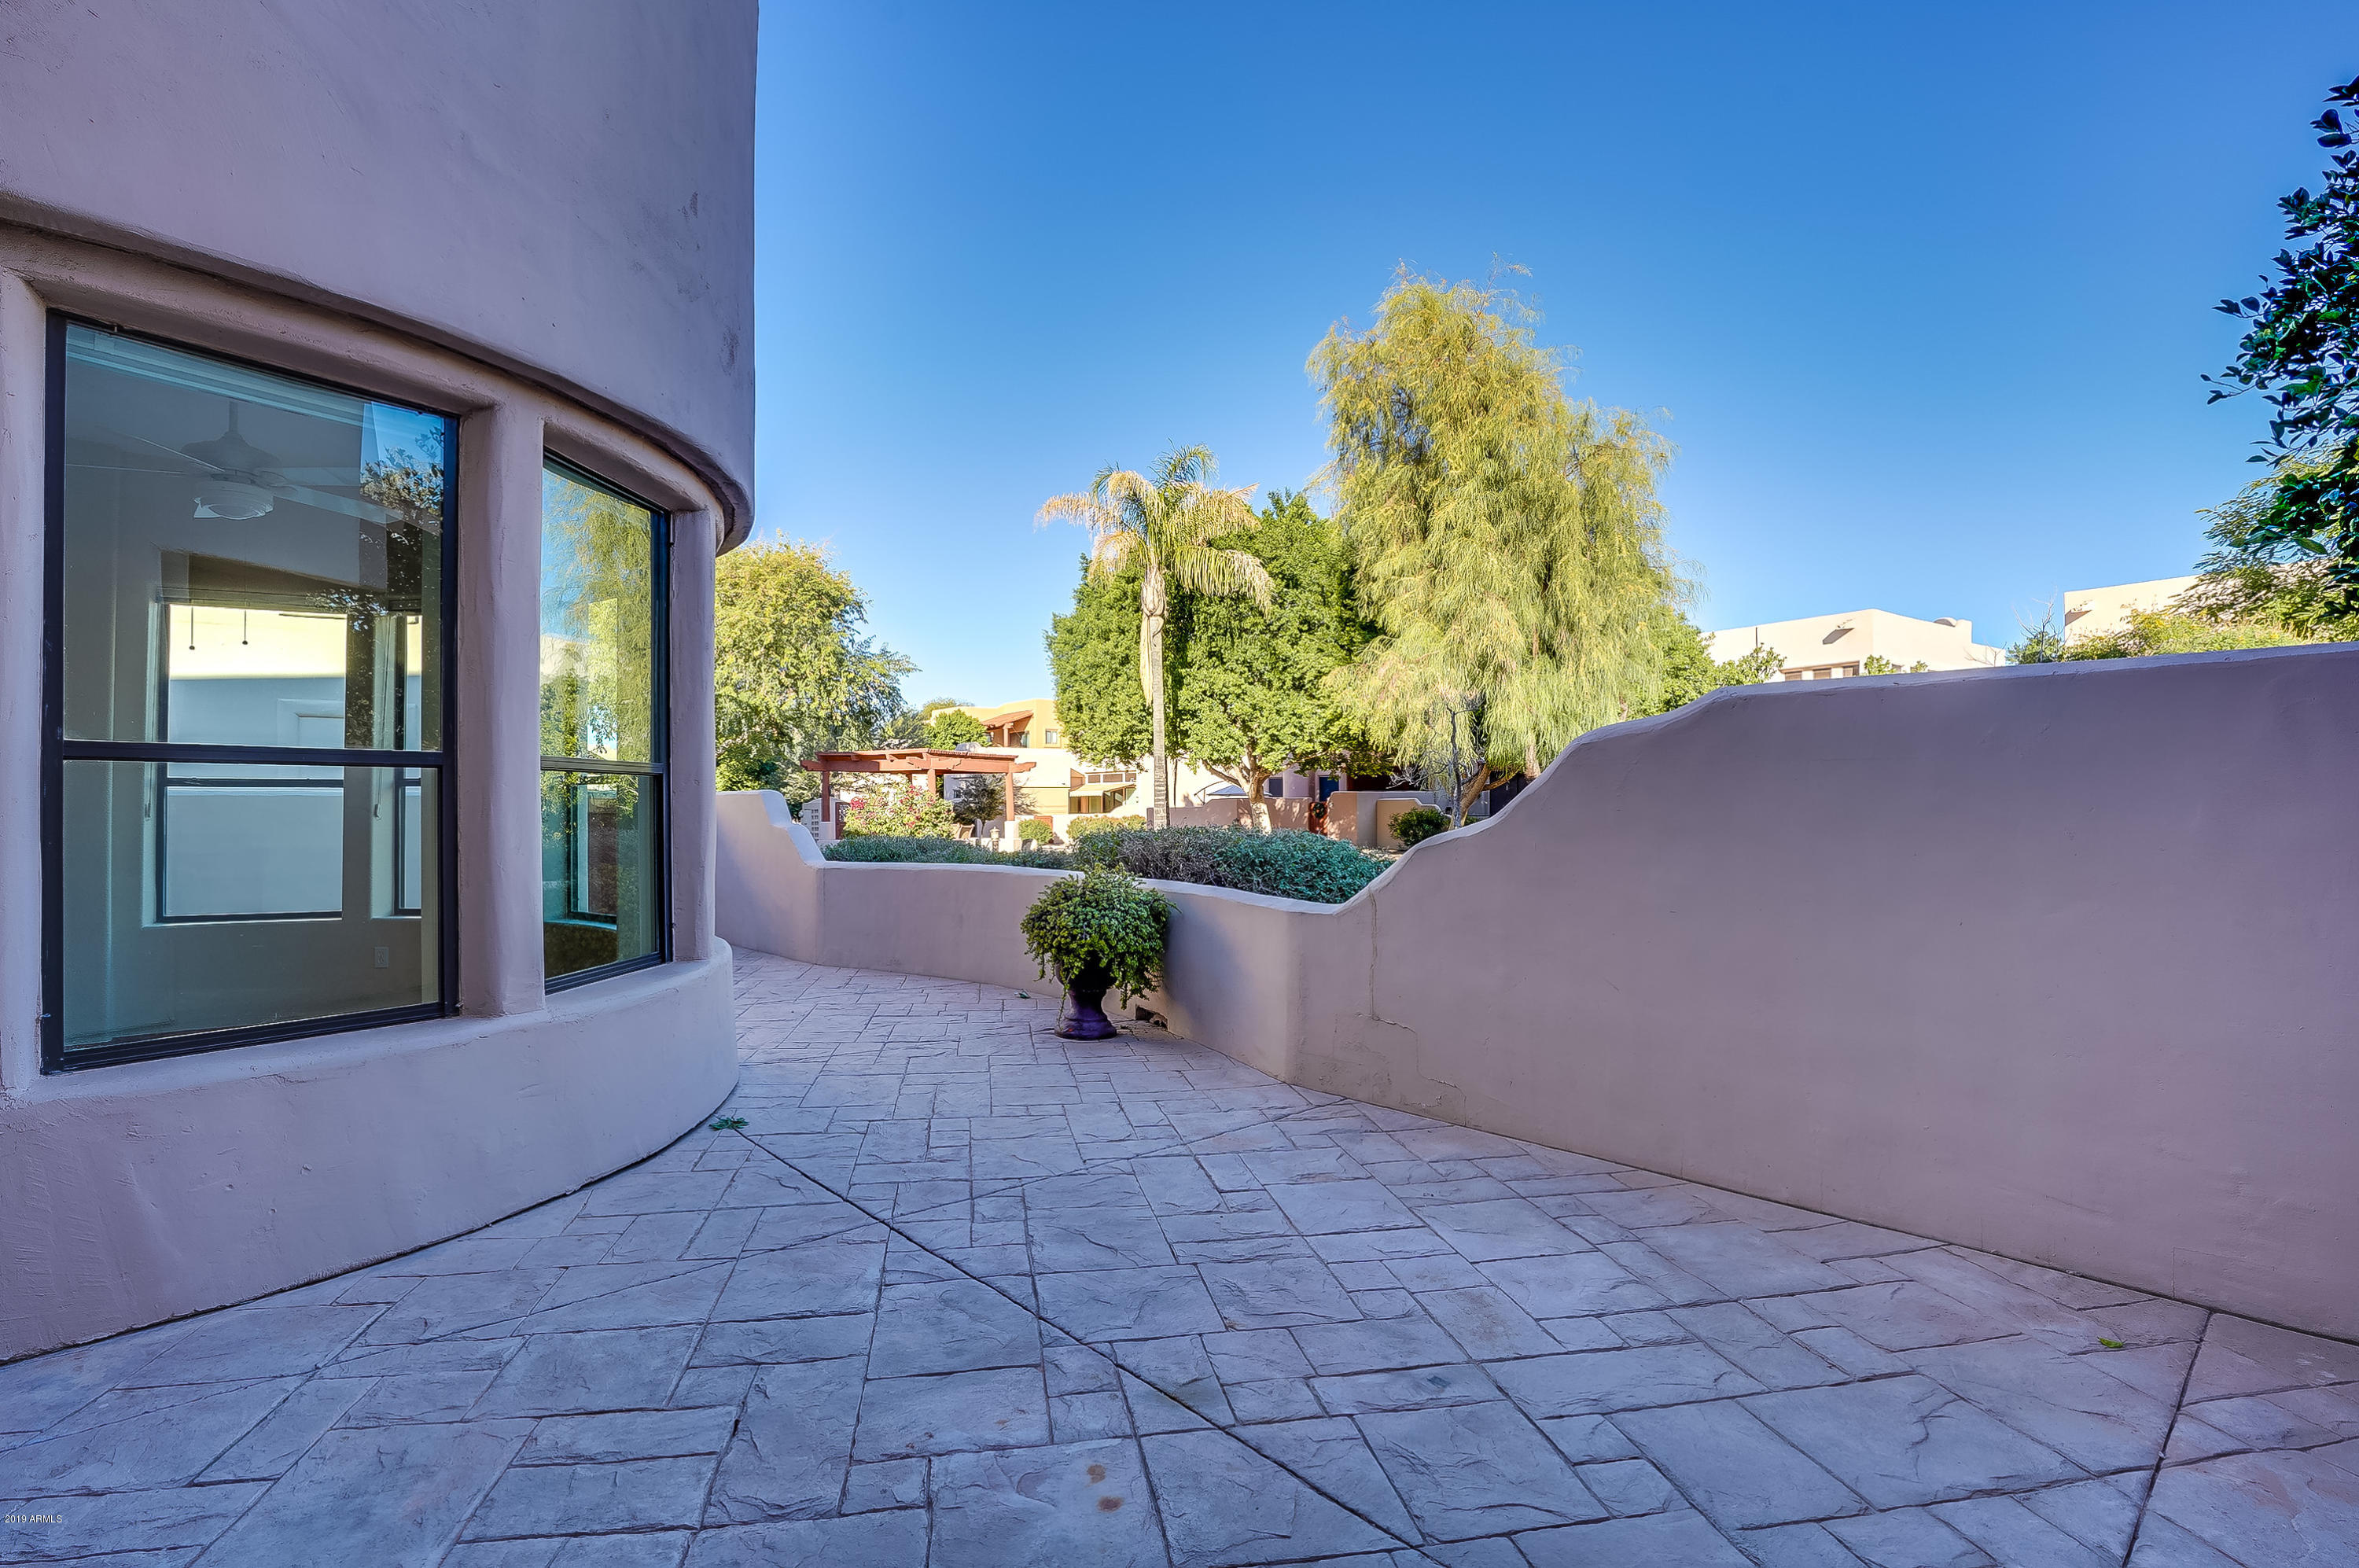 MLS 5863780 333 N PENNINGTON Drive Unit 16, Chandler, AZ 85224 Chandler AZ Andersen Springs